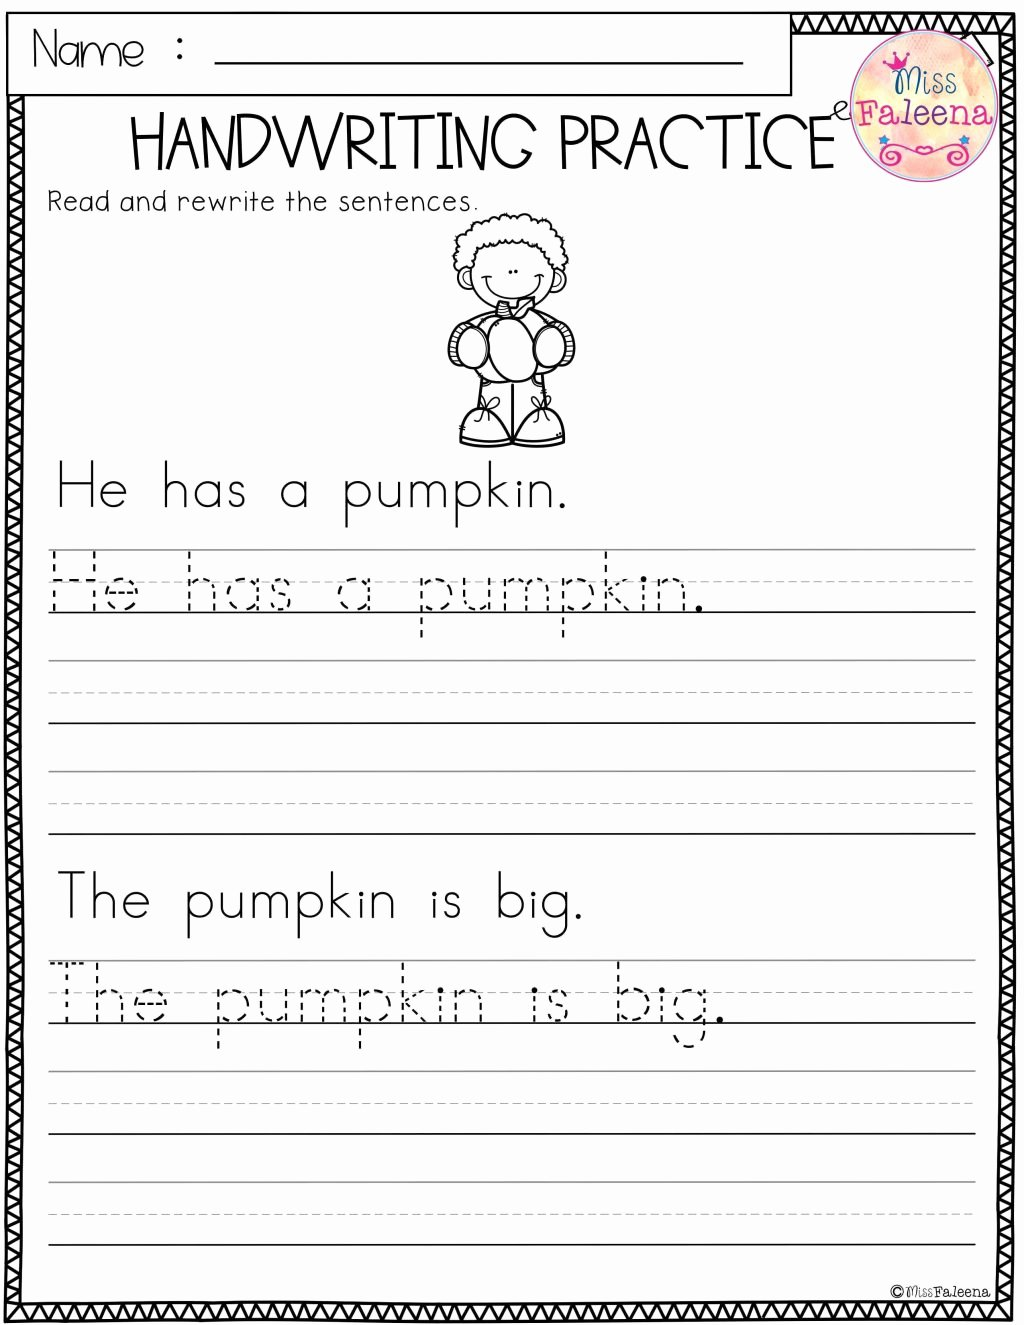 Free Printable Handwriting Worksheets for Preschoolers New Worksheet Free Handwriting Worksheets Printable for